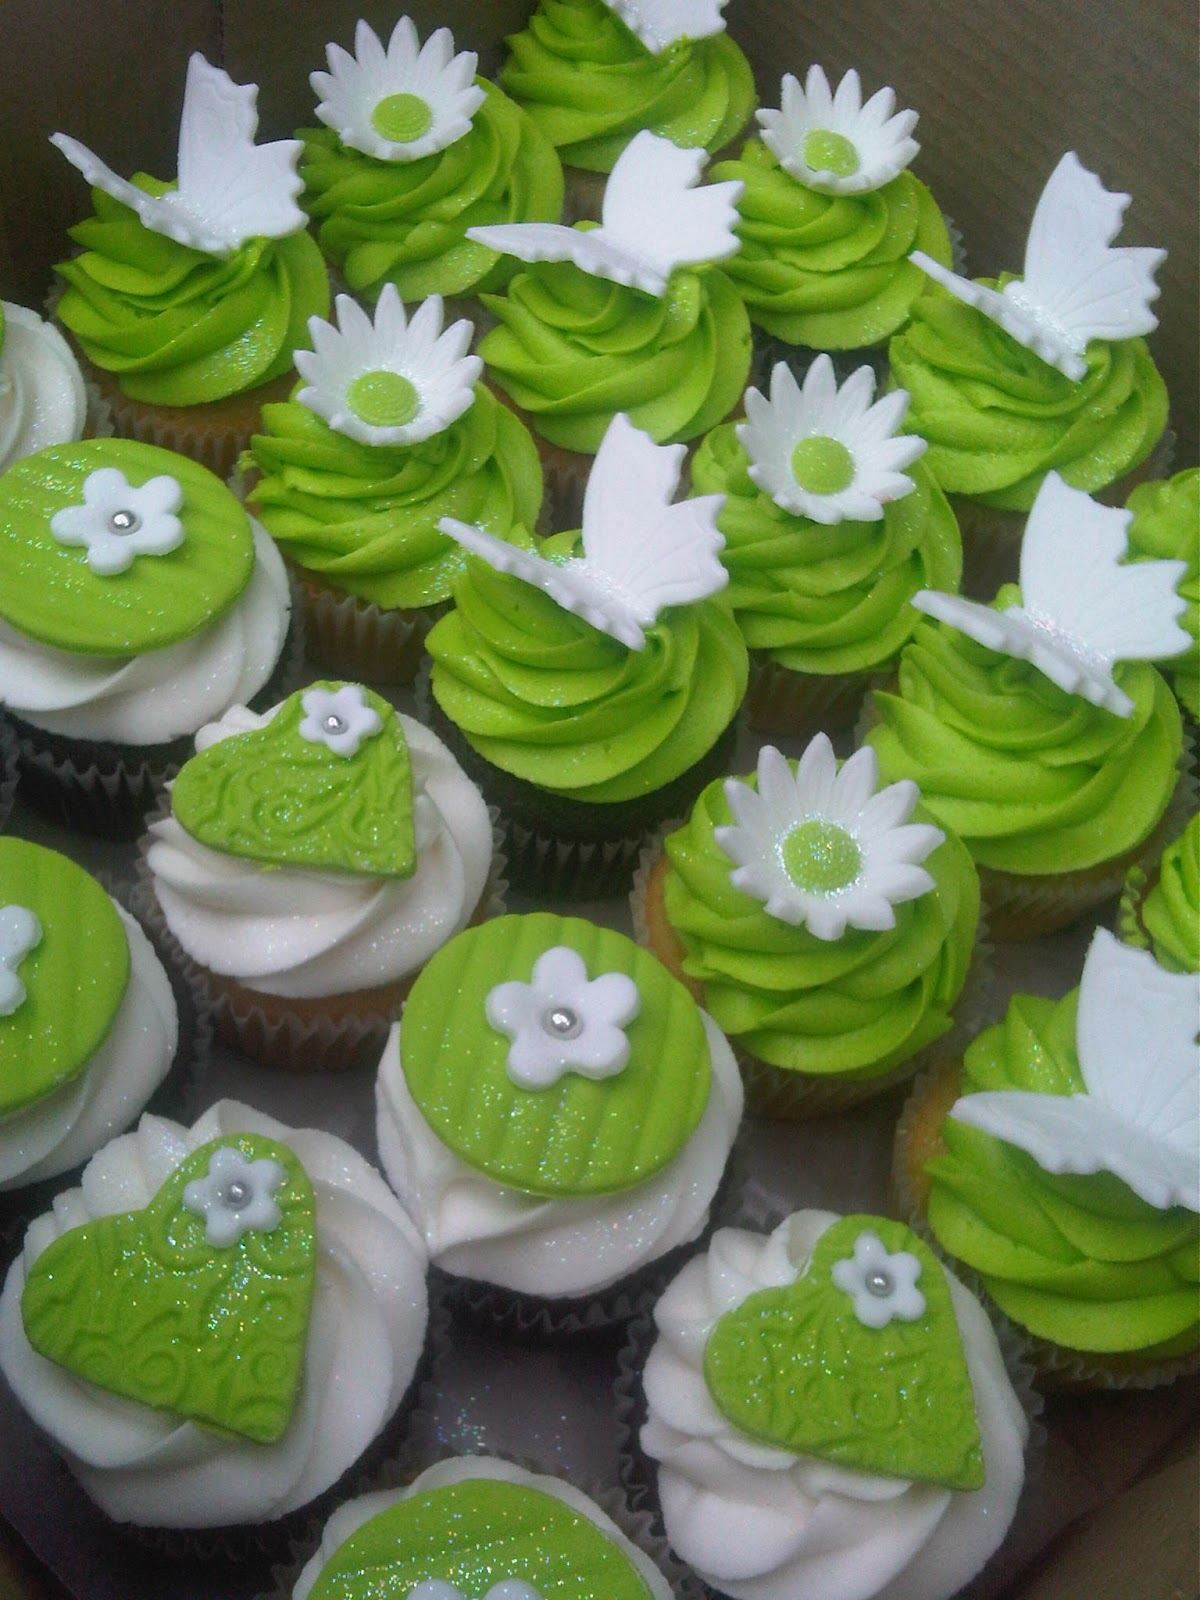 Angry Bird Girl Wallpaper Welcome To Just Iced Green And White Cupcakes